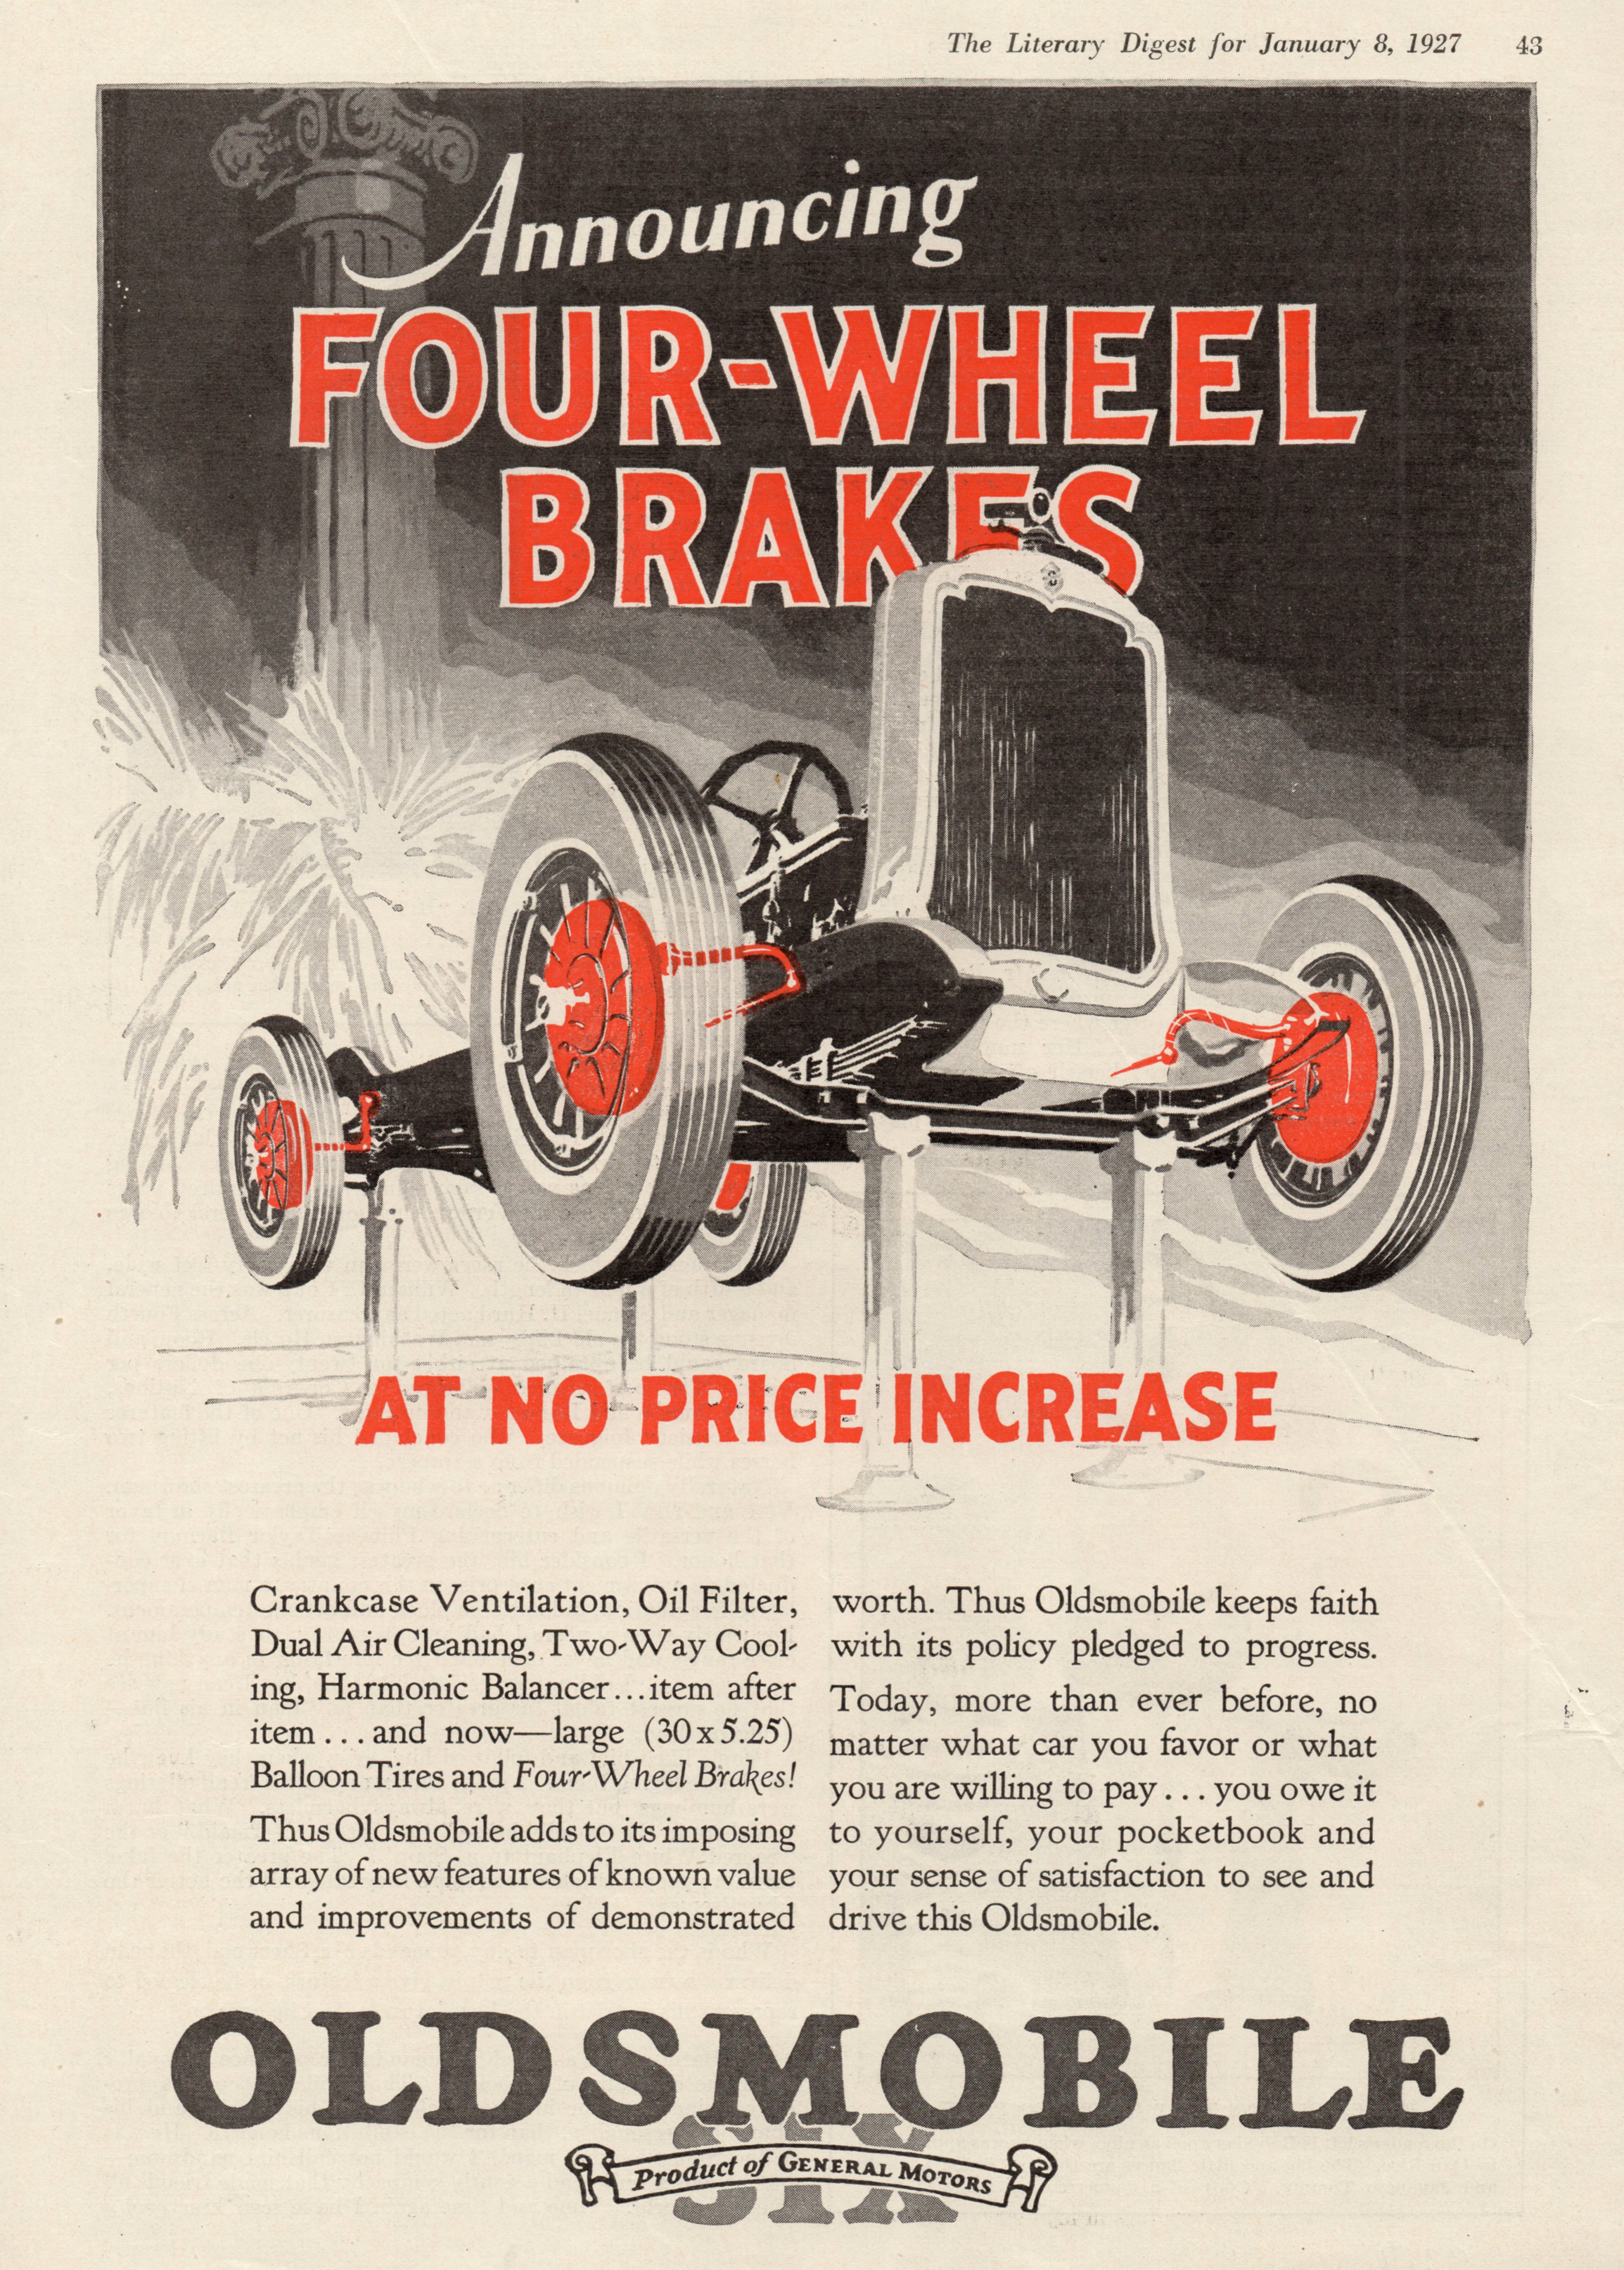 1927 Oldsmobile - published in The Literary Digest - January 8, 1927